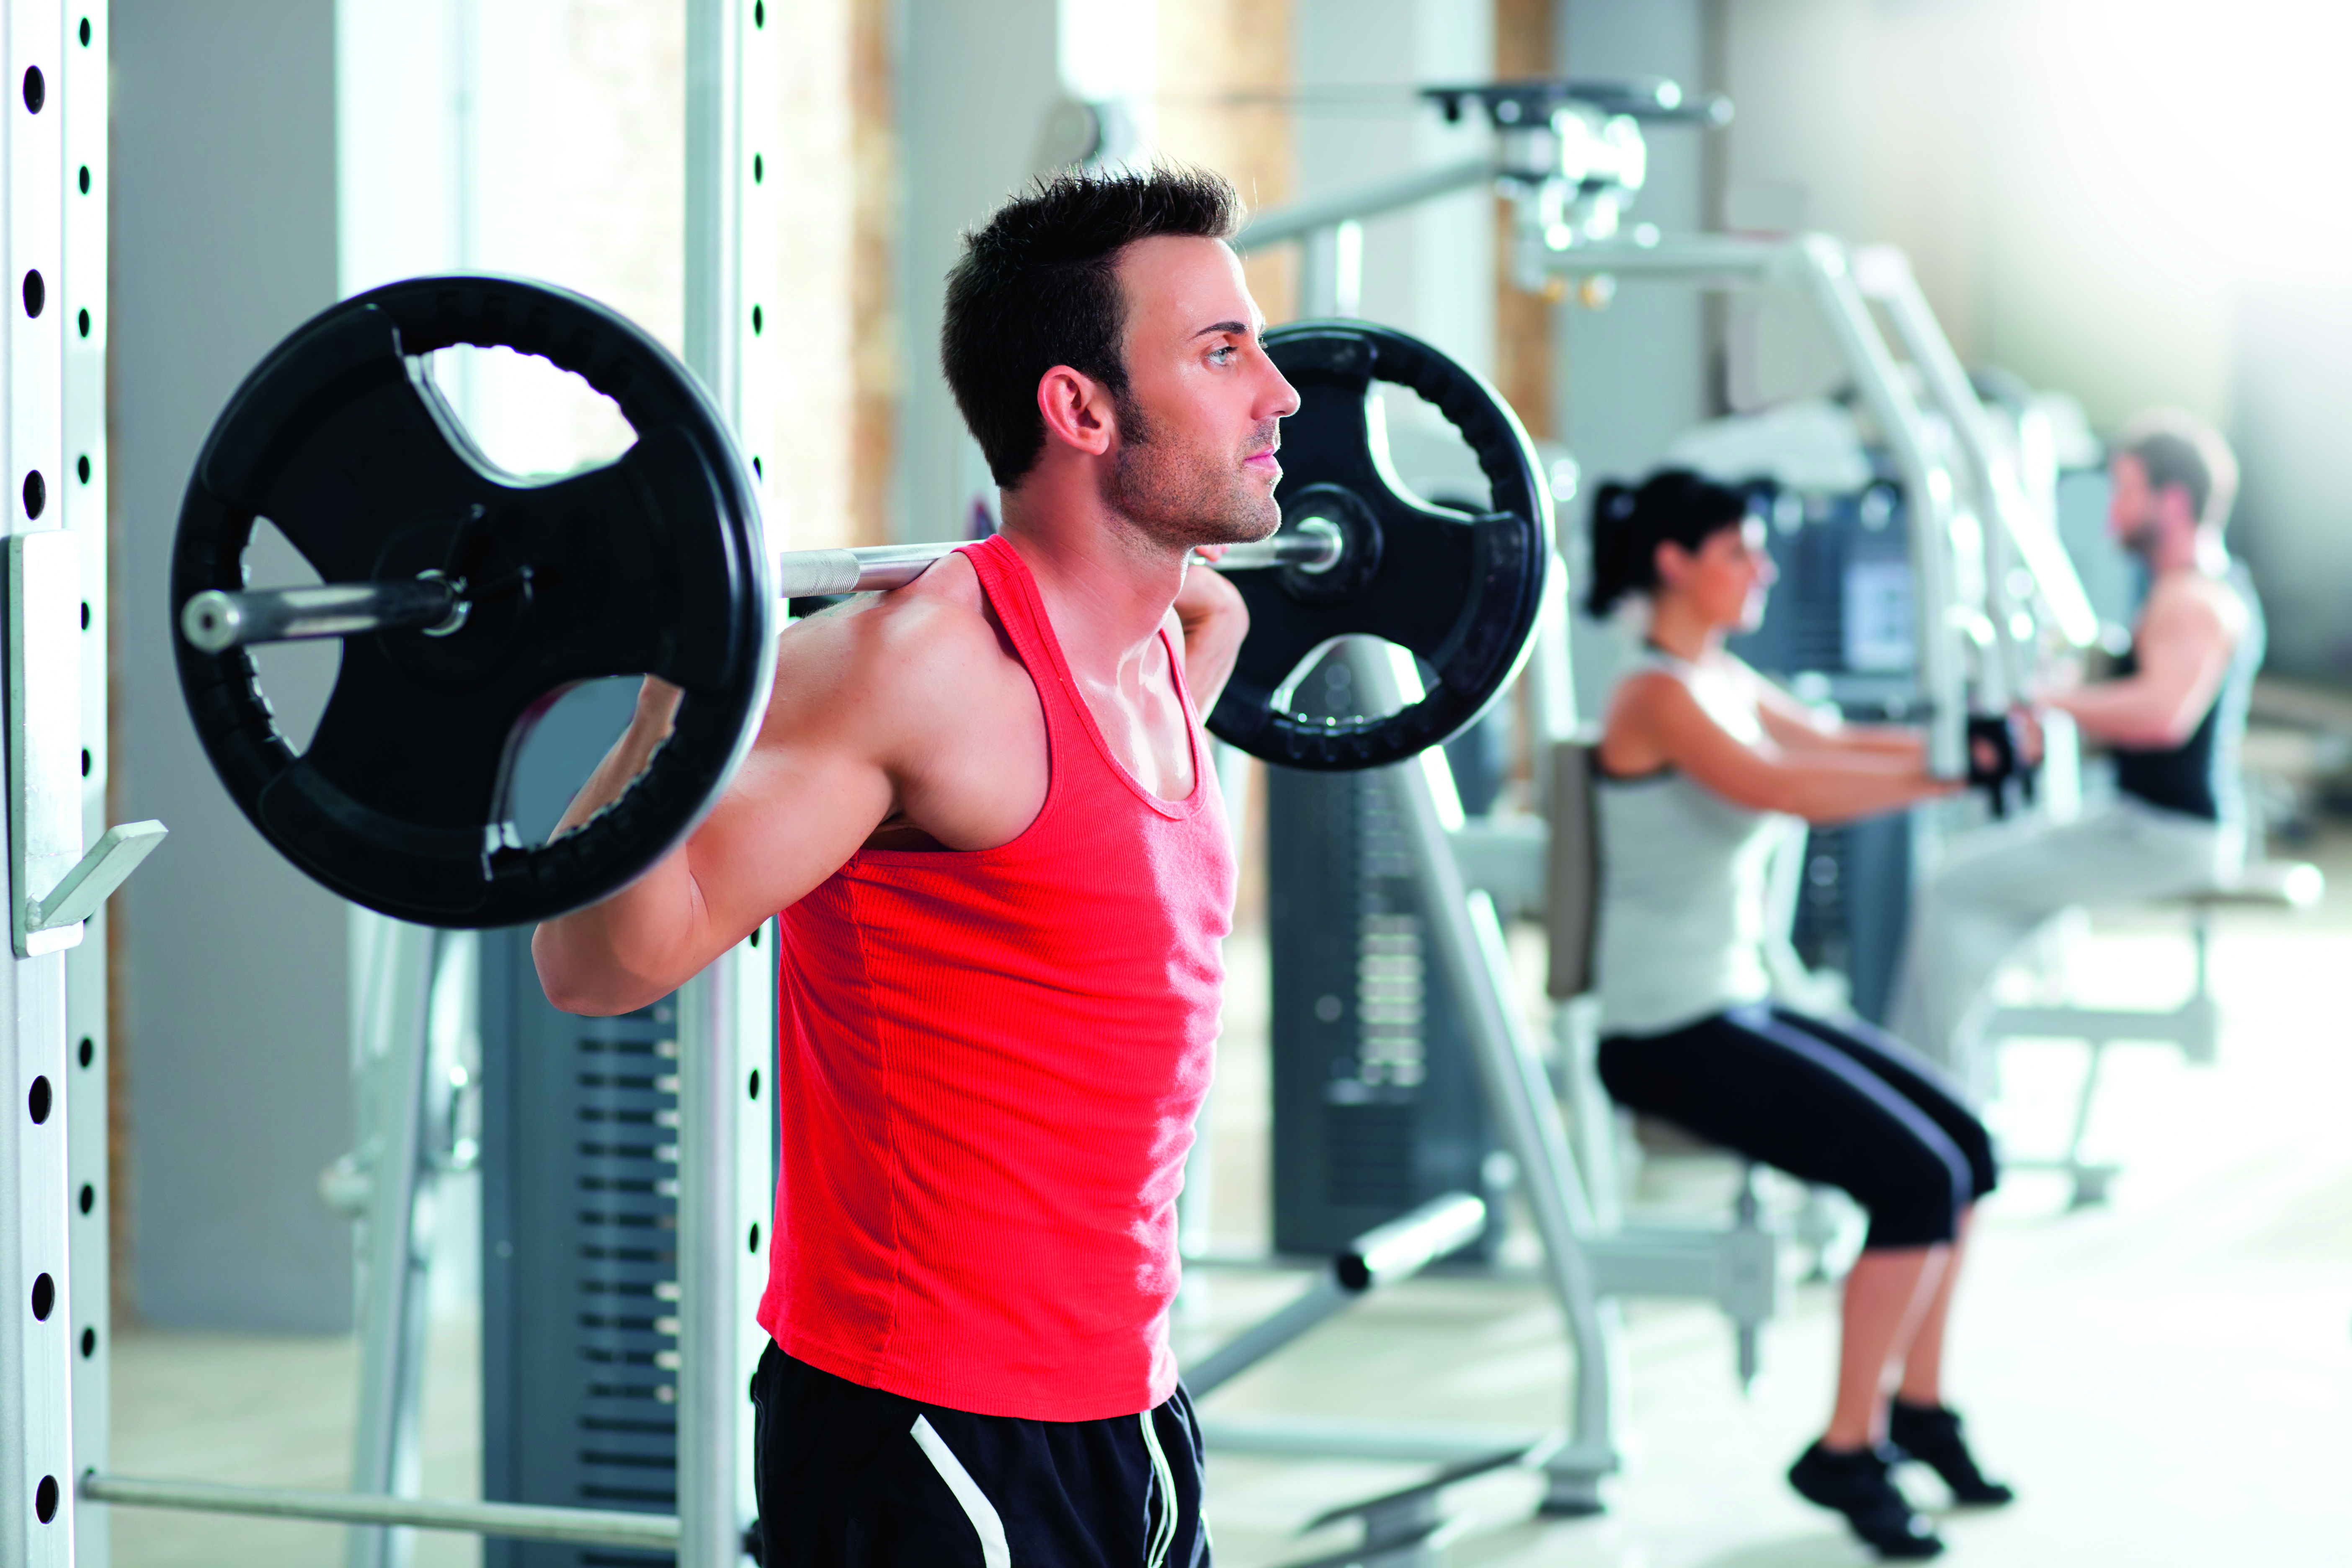 Start your career as a personal trainer